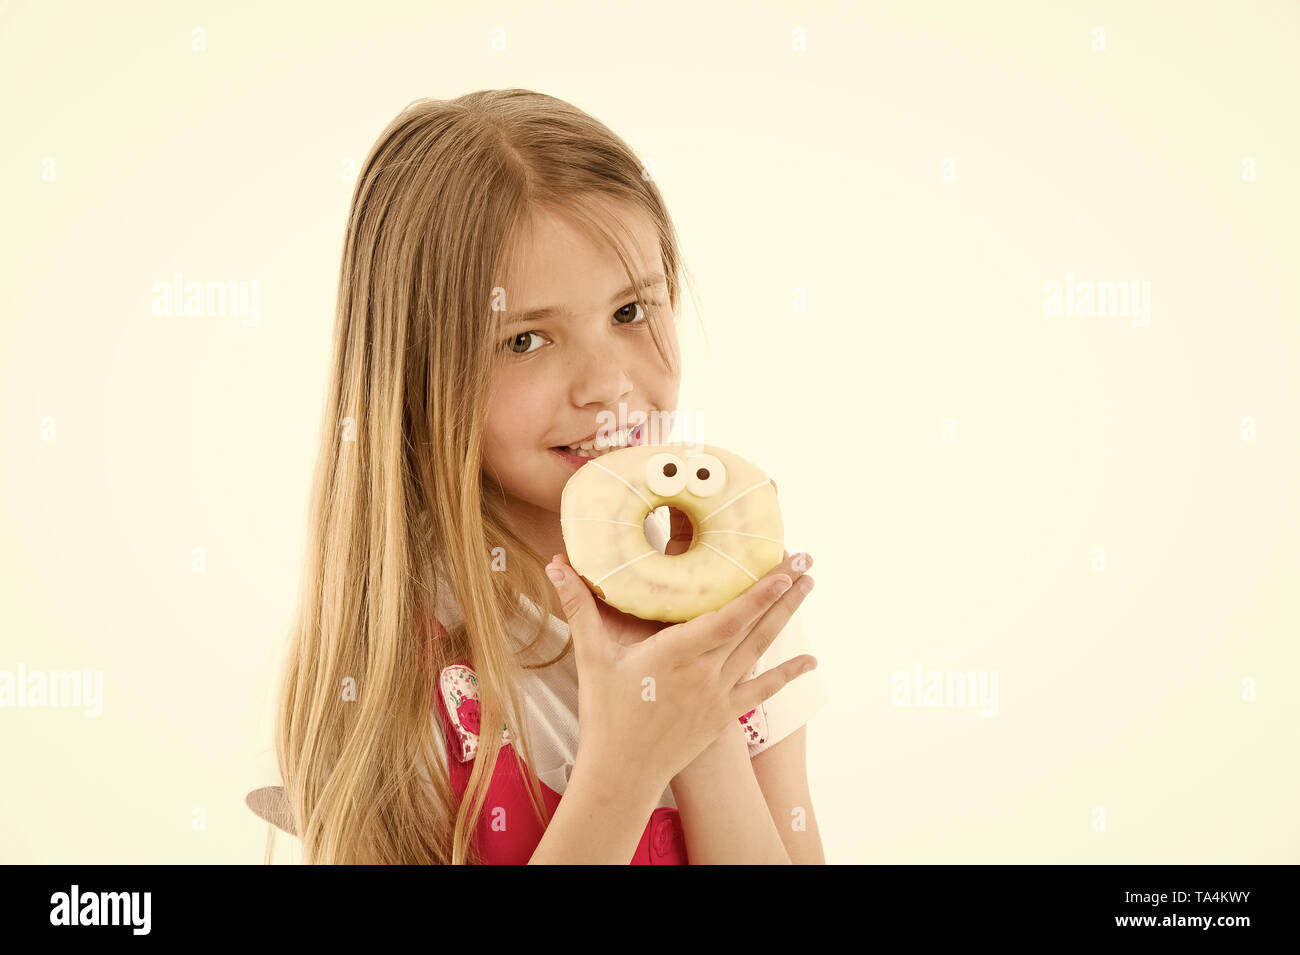 Child eat donut isolated on white. Little girl with glazed ring doughnut. Kid with junk food. Food for snack and dessert. dieting and fitness concept. Childhood and childcare, copy space. - Stock Image